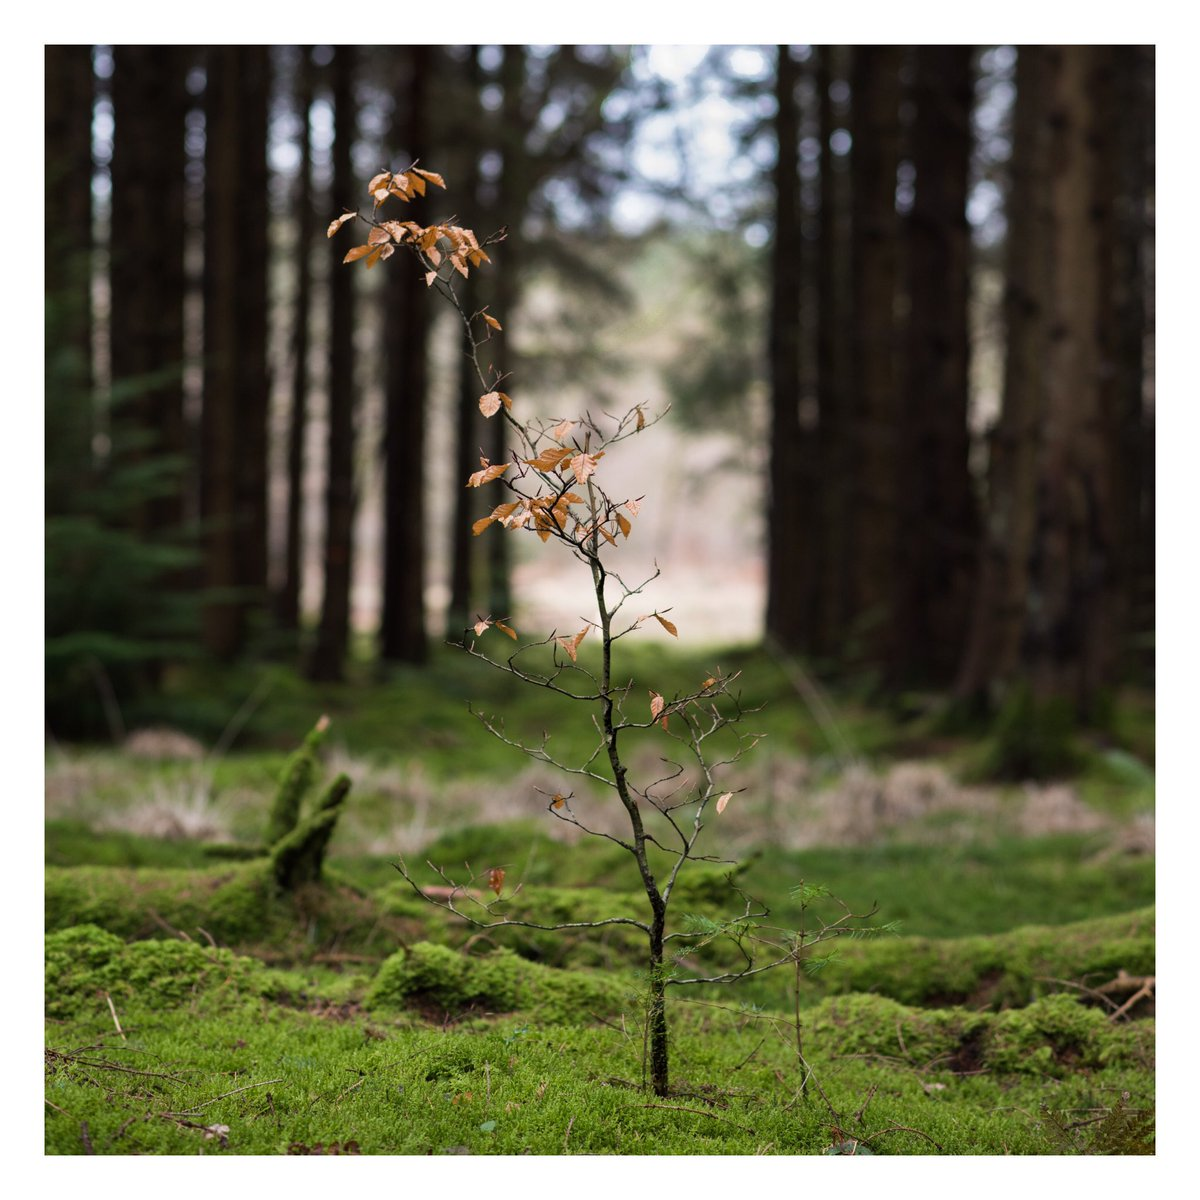 Or, for a calmer view of the woodlands, how about @HarperBPhotos' delightfully tranquil #WexMondays entry? https://t.co/QxarF1ovbv